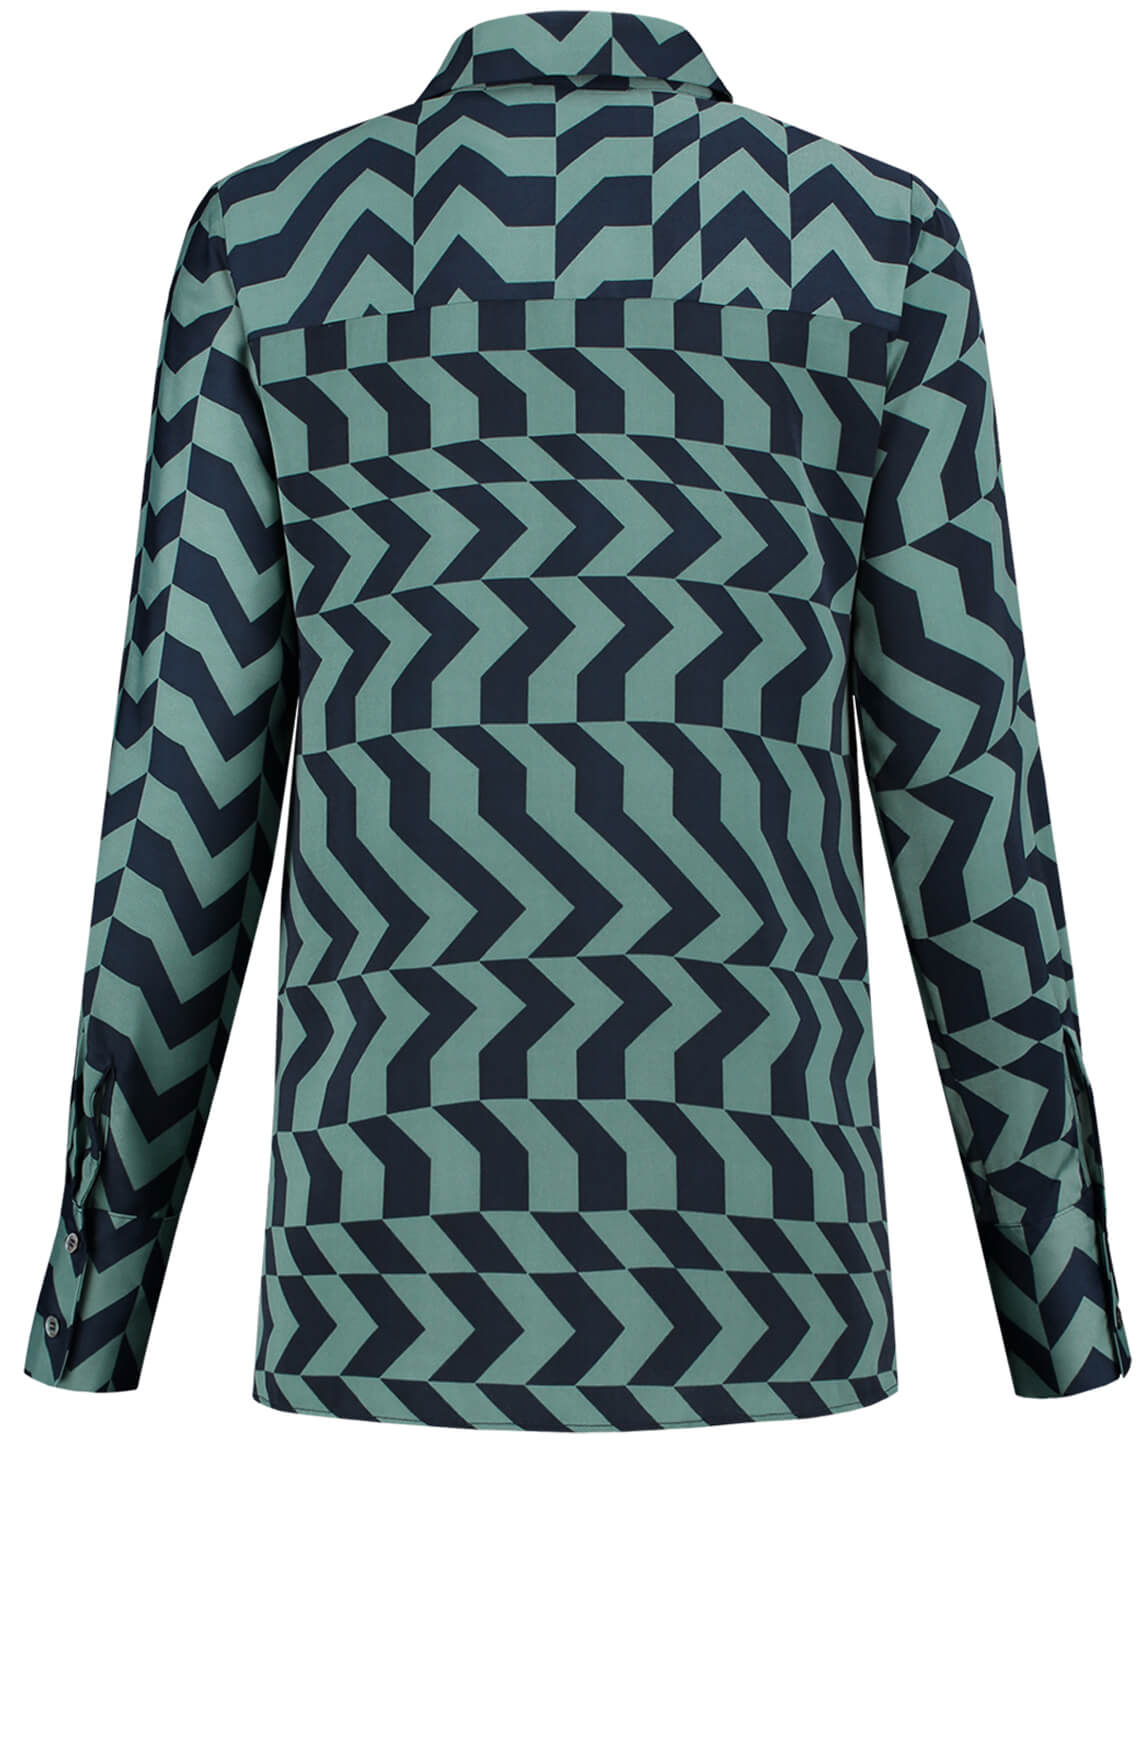 Fifth House Dames Rara zigzag blouse groen